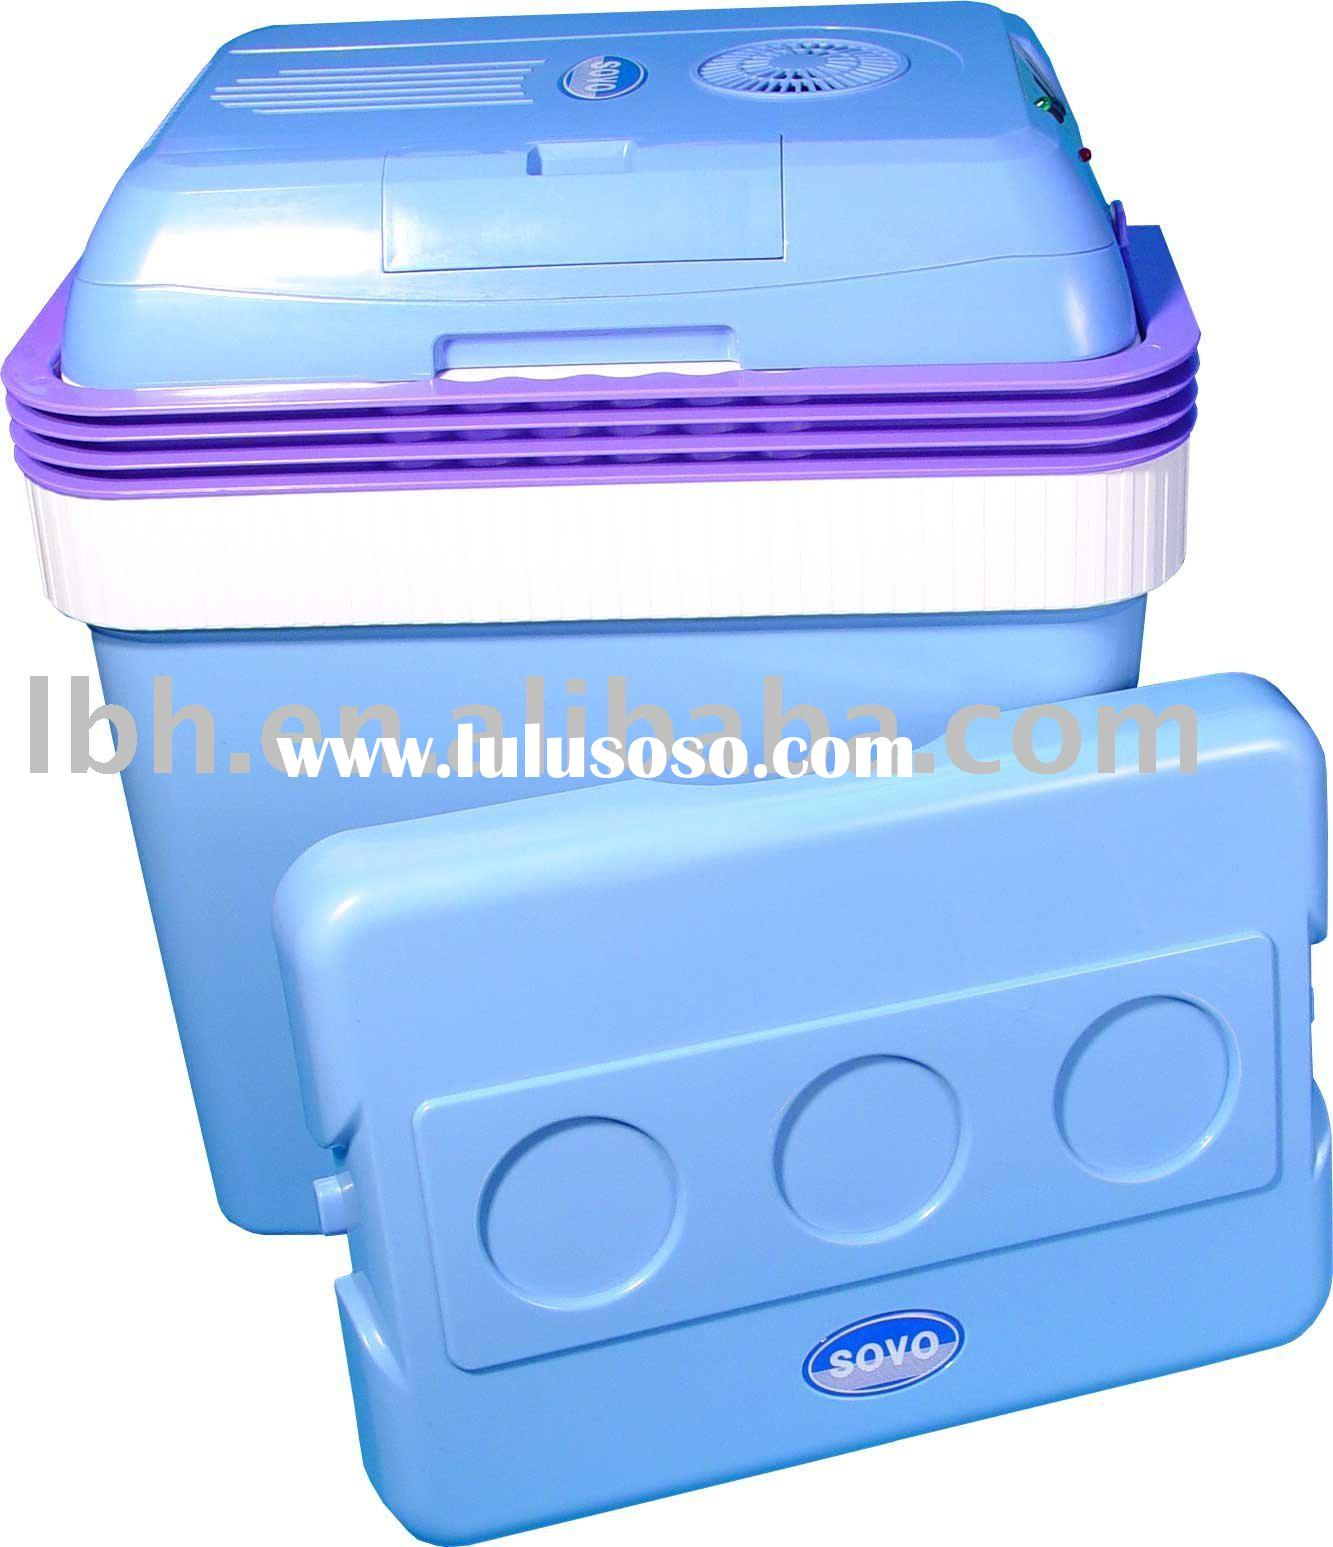 25L Car Cooler box (Cooler & Wamer)